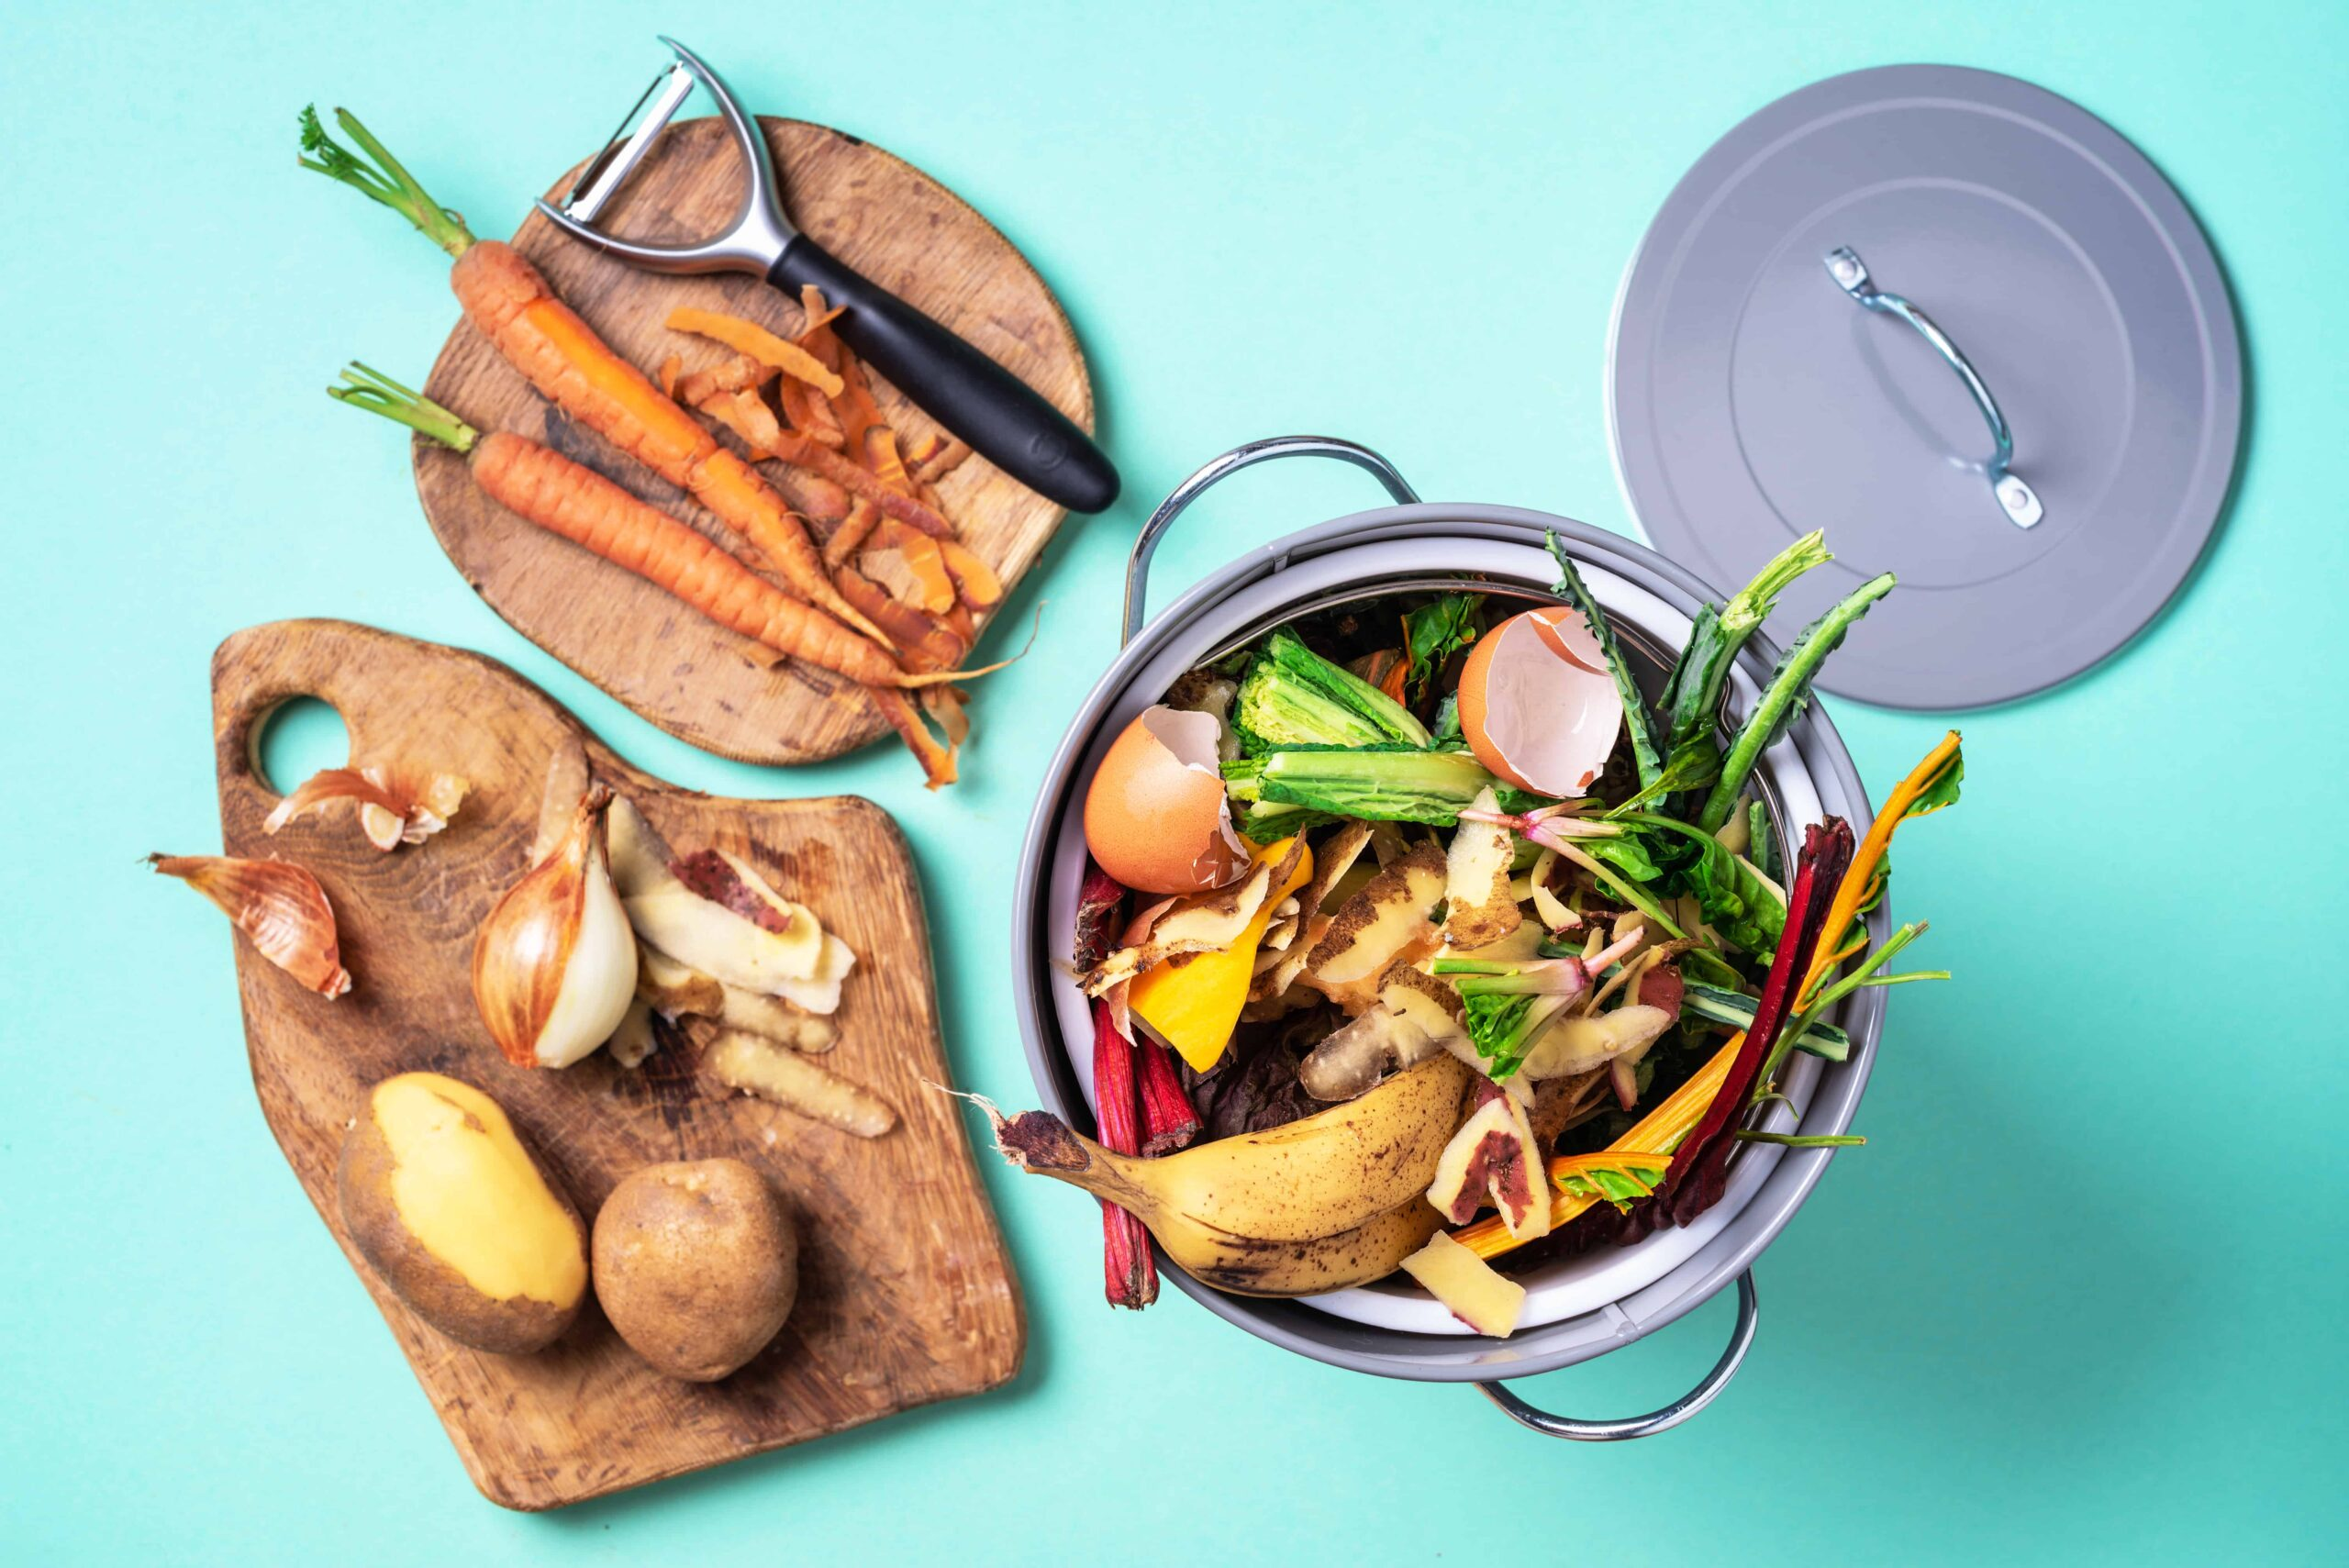 30 Clever Ways to Use Food Scraps